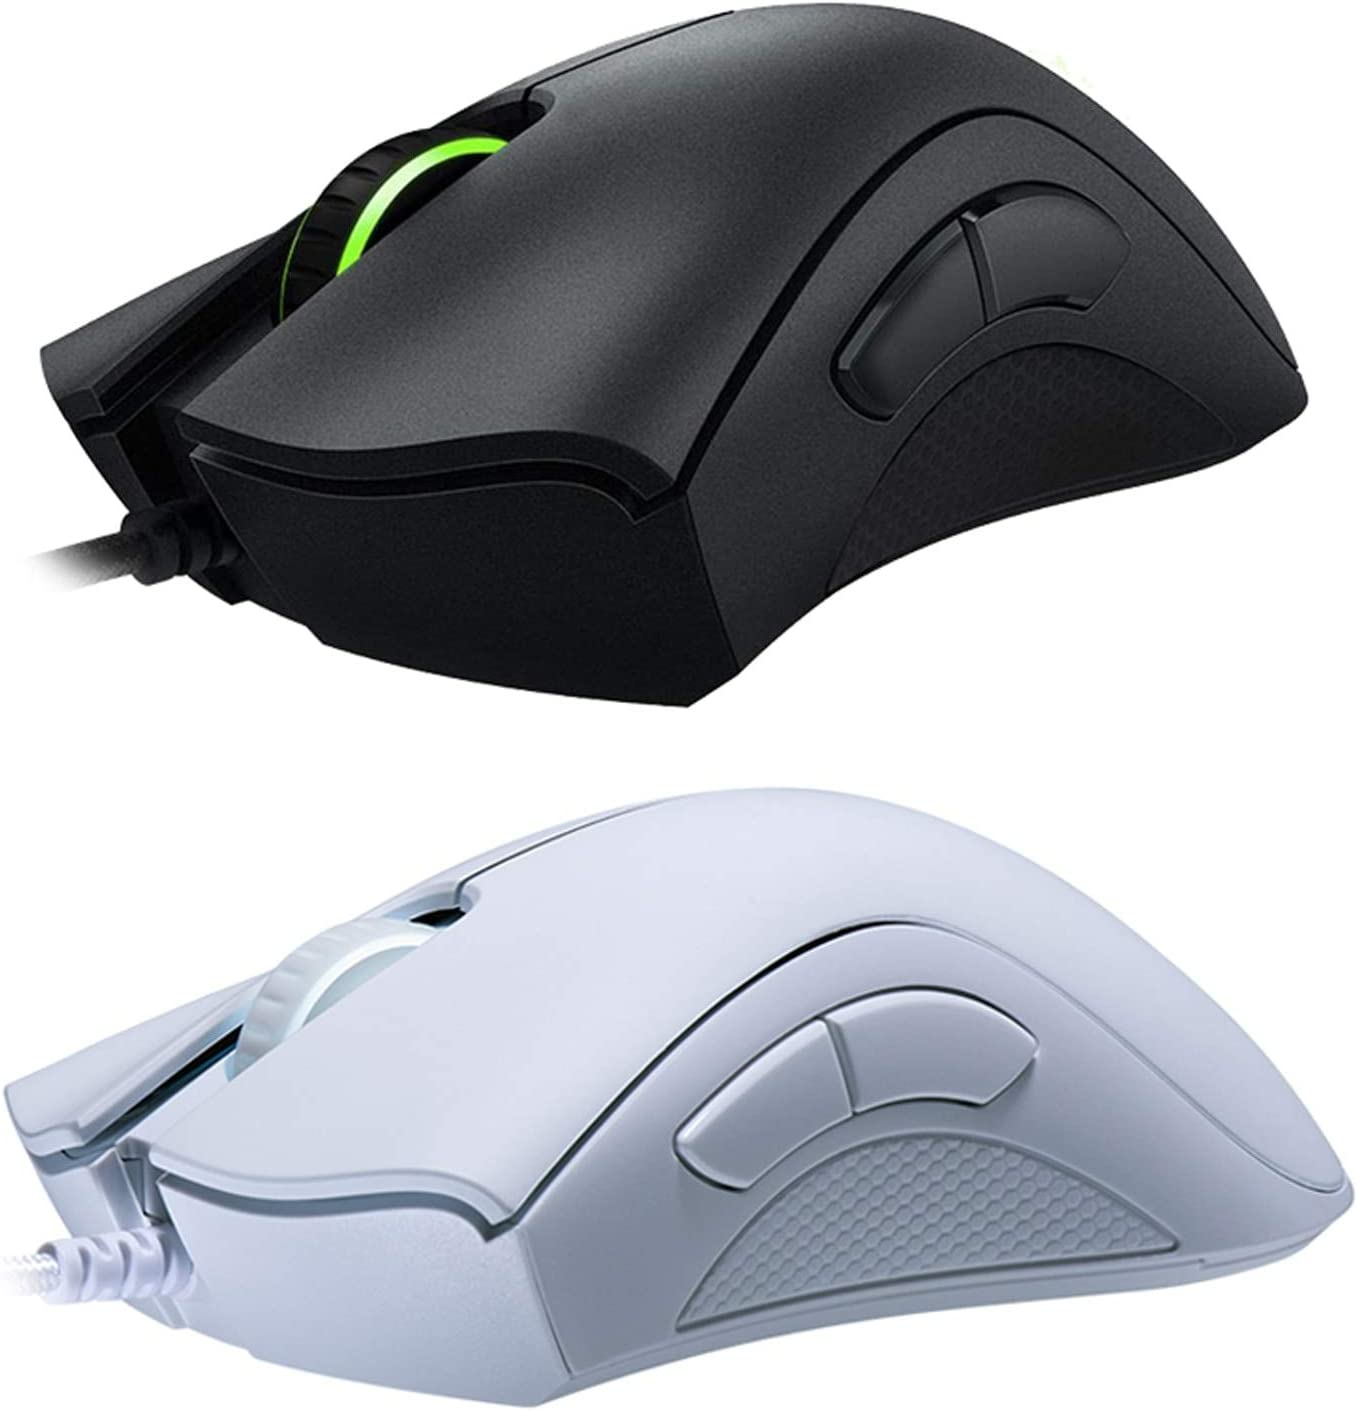 Wired Gaming Mouse Mice 6400DPI Optical Sensor 5 Independently Buttons for Laptop PC Gamer